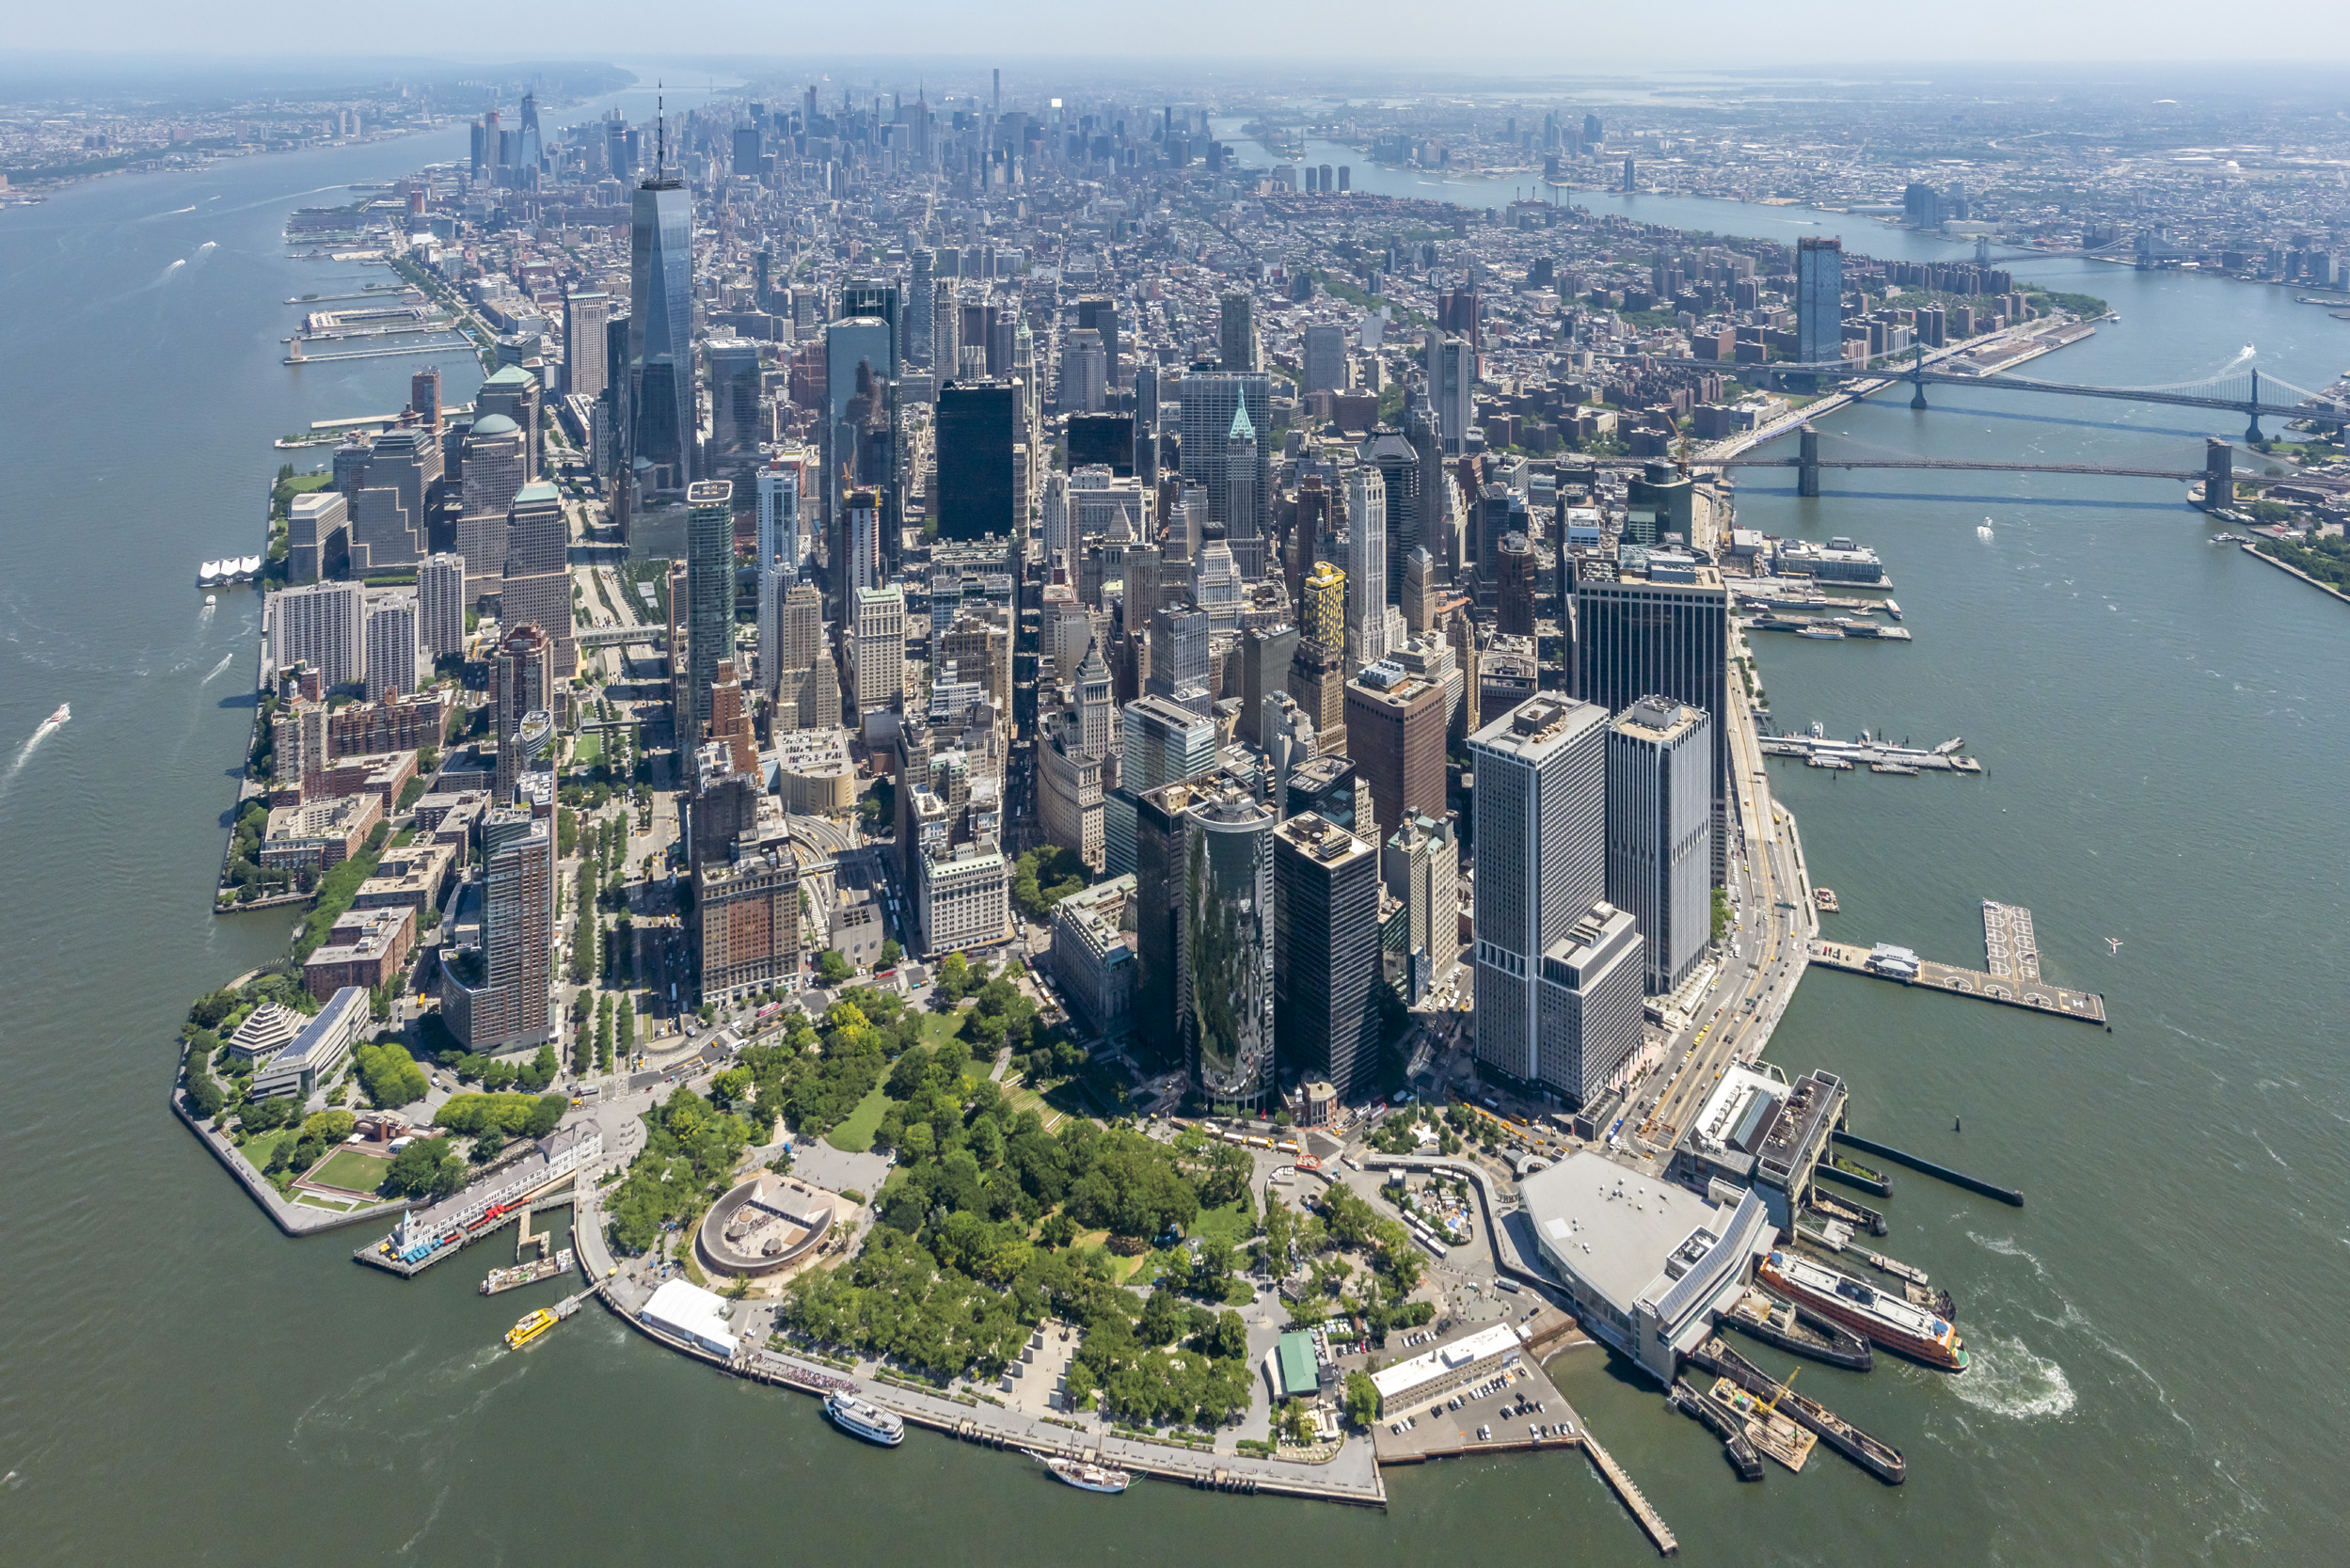 Downtown Manhattan from a Helicopter